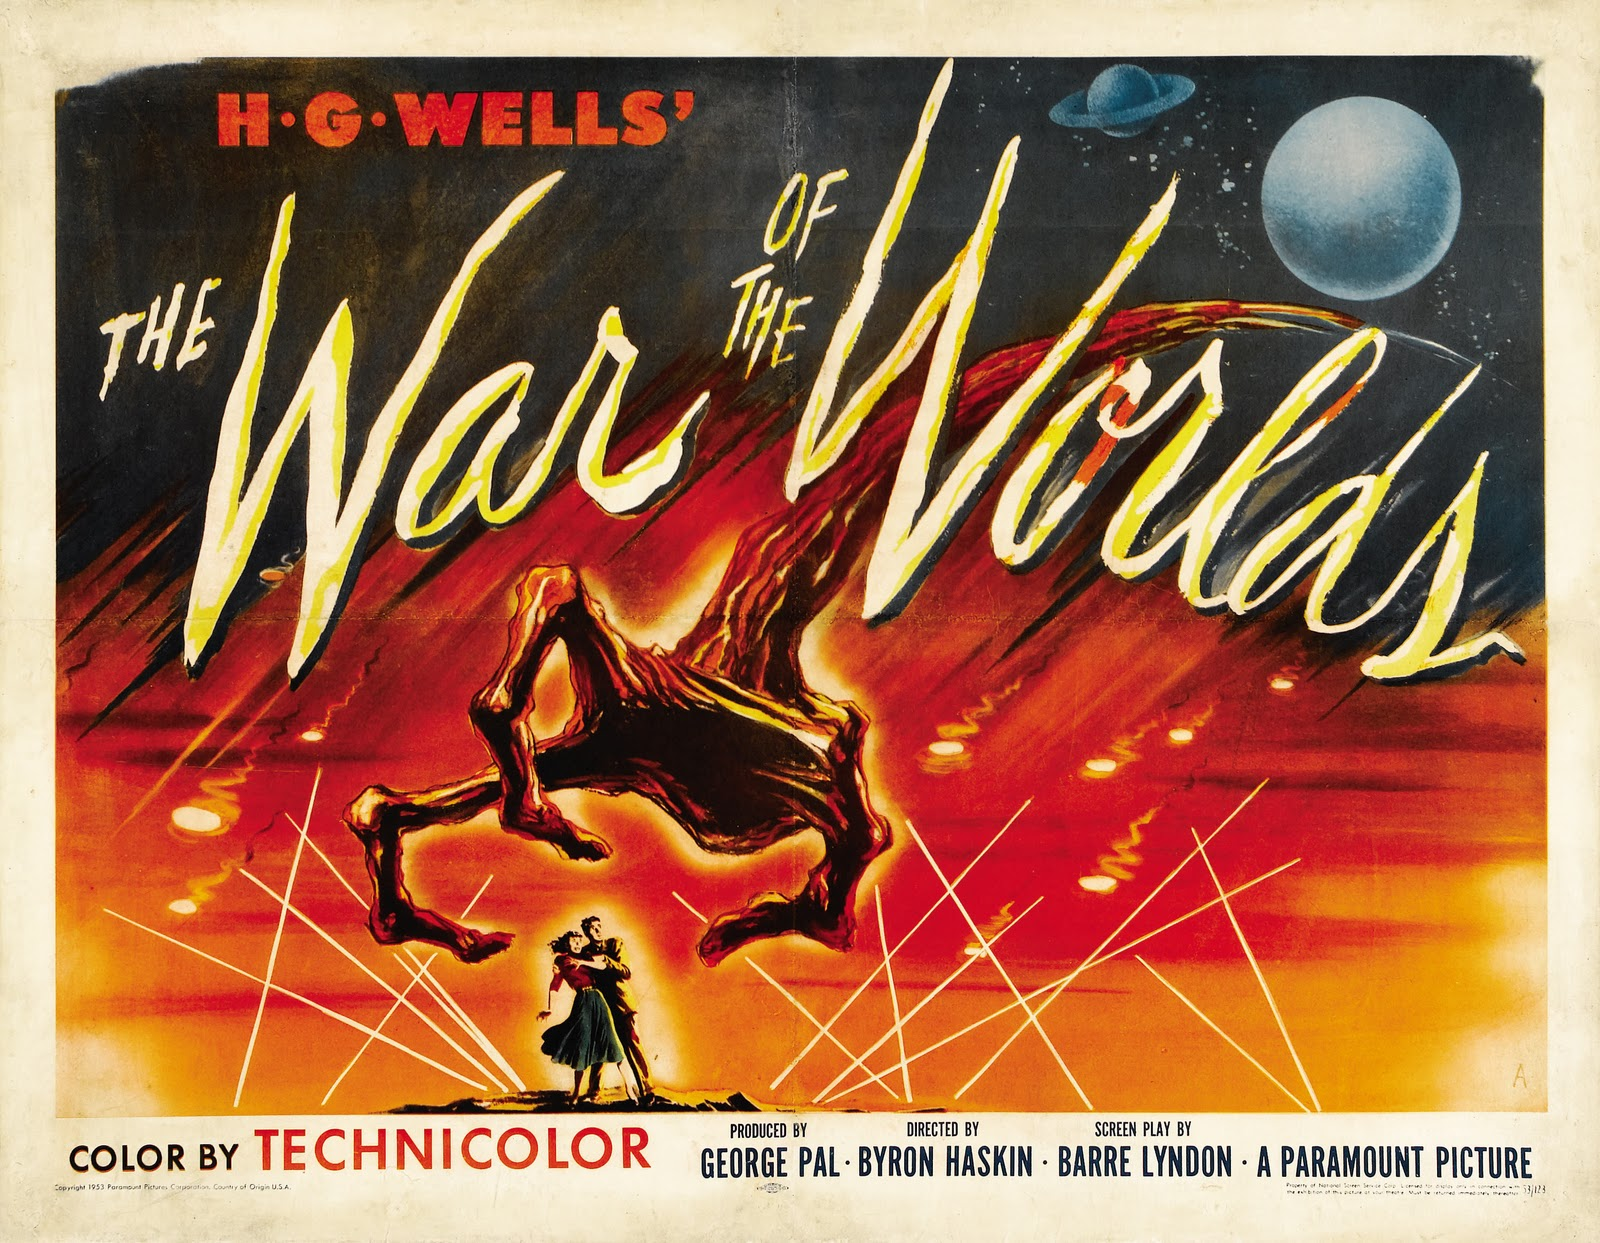 the war of the world The war of the worlds but who shall dwell in these worlds if they be inhabited are we or they lords of the world and how are all things made for man.